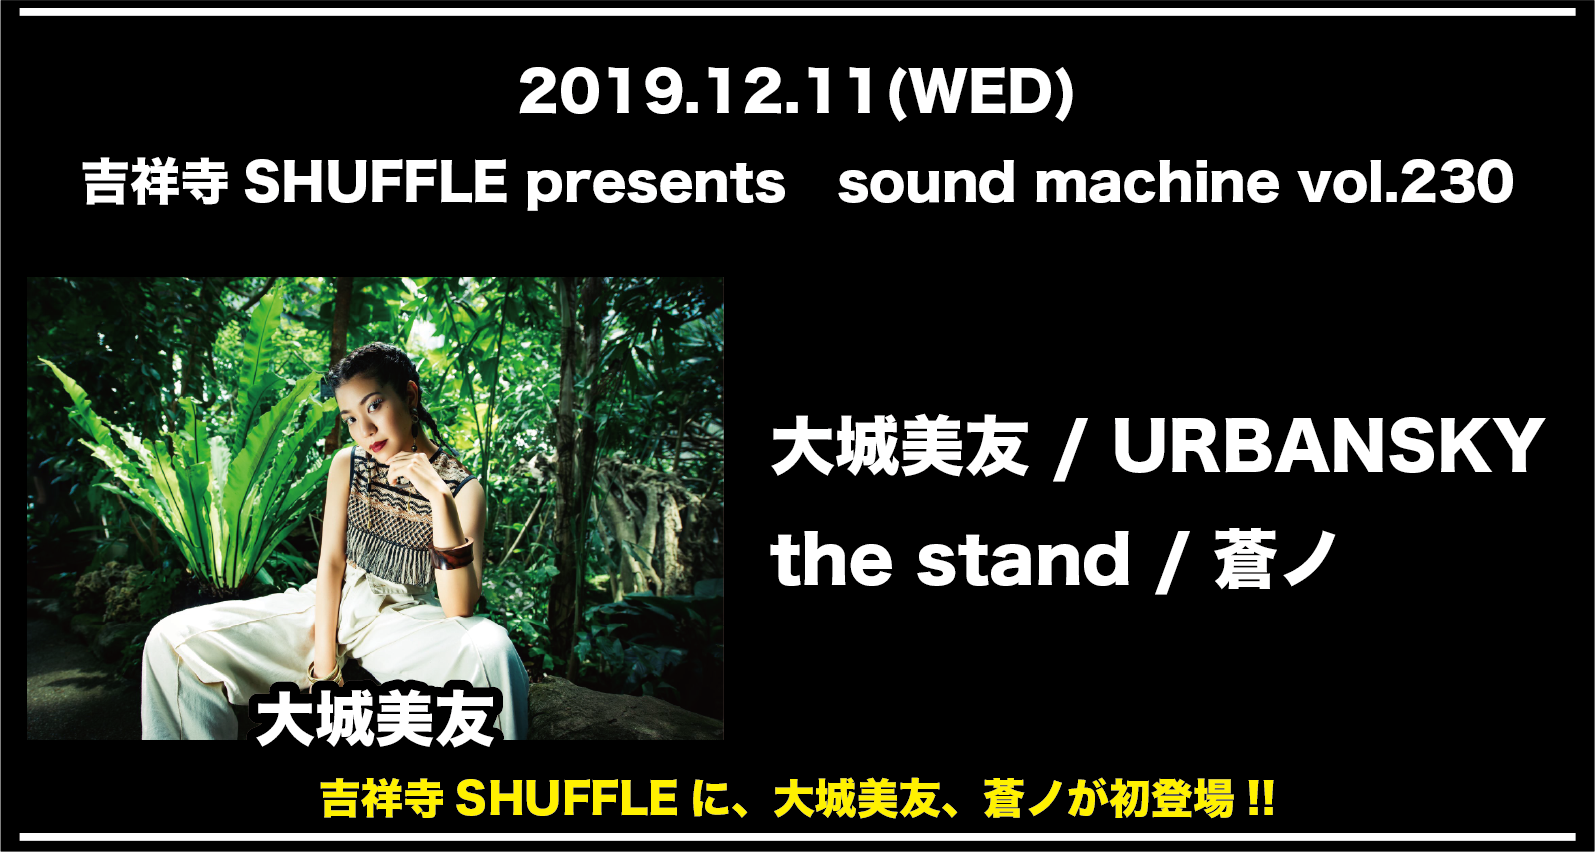 吉祥寺SHUFFLE presents sound machine vol.230